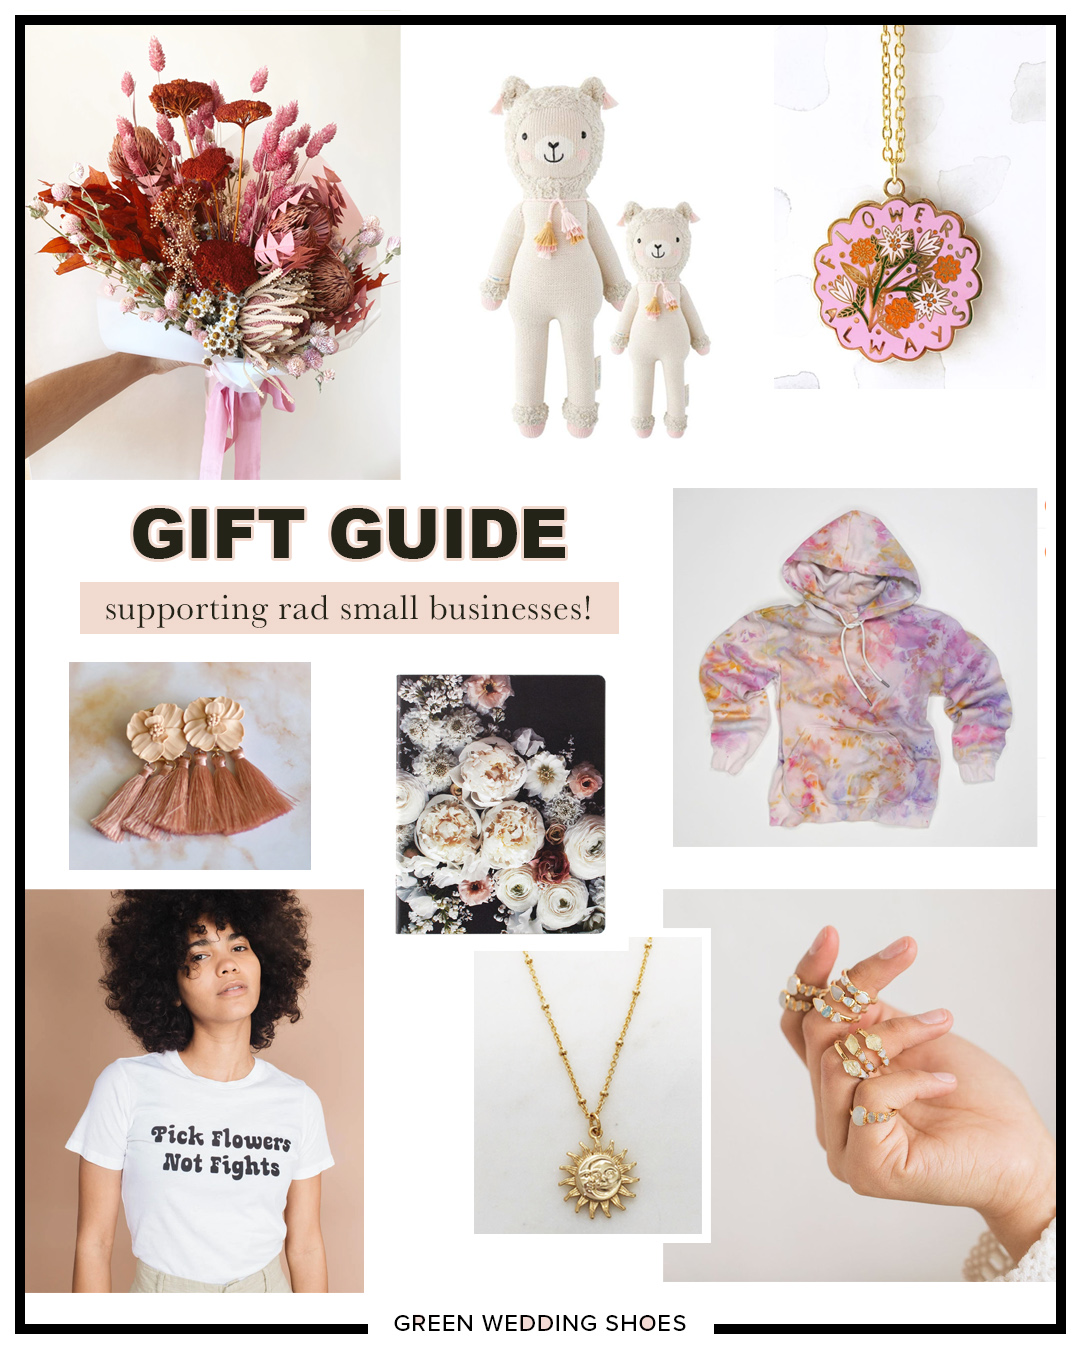 Gift Ideas spotlighting small businesses